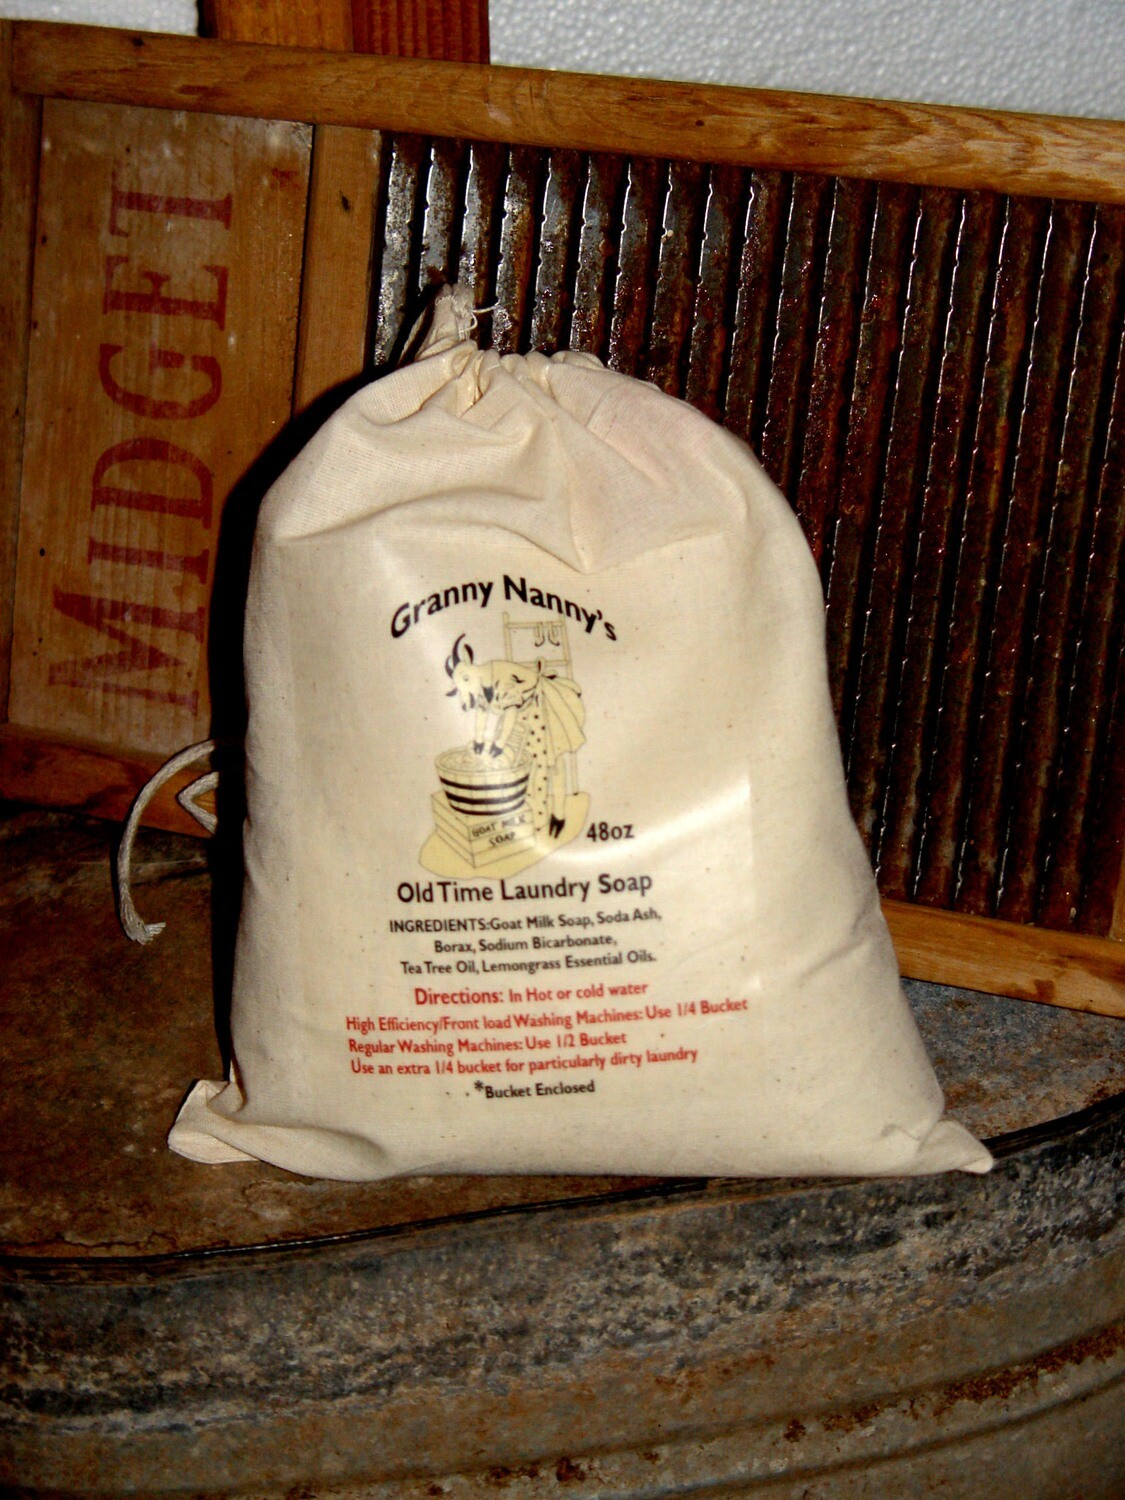 Granny Nanny's Old Time Laundry Soap Powder